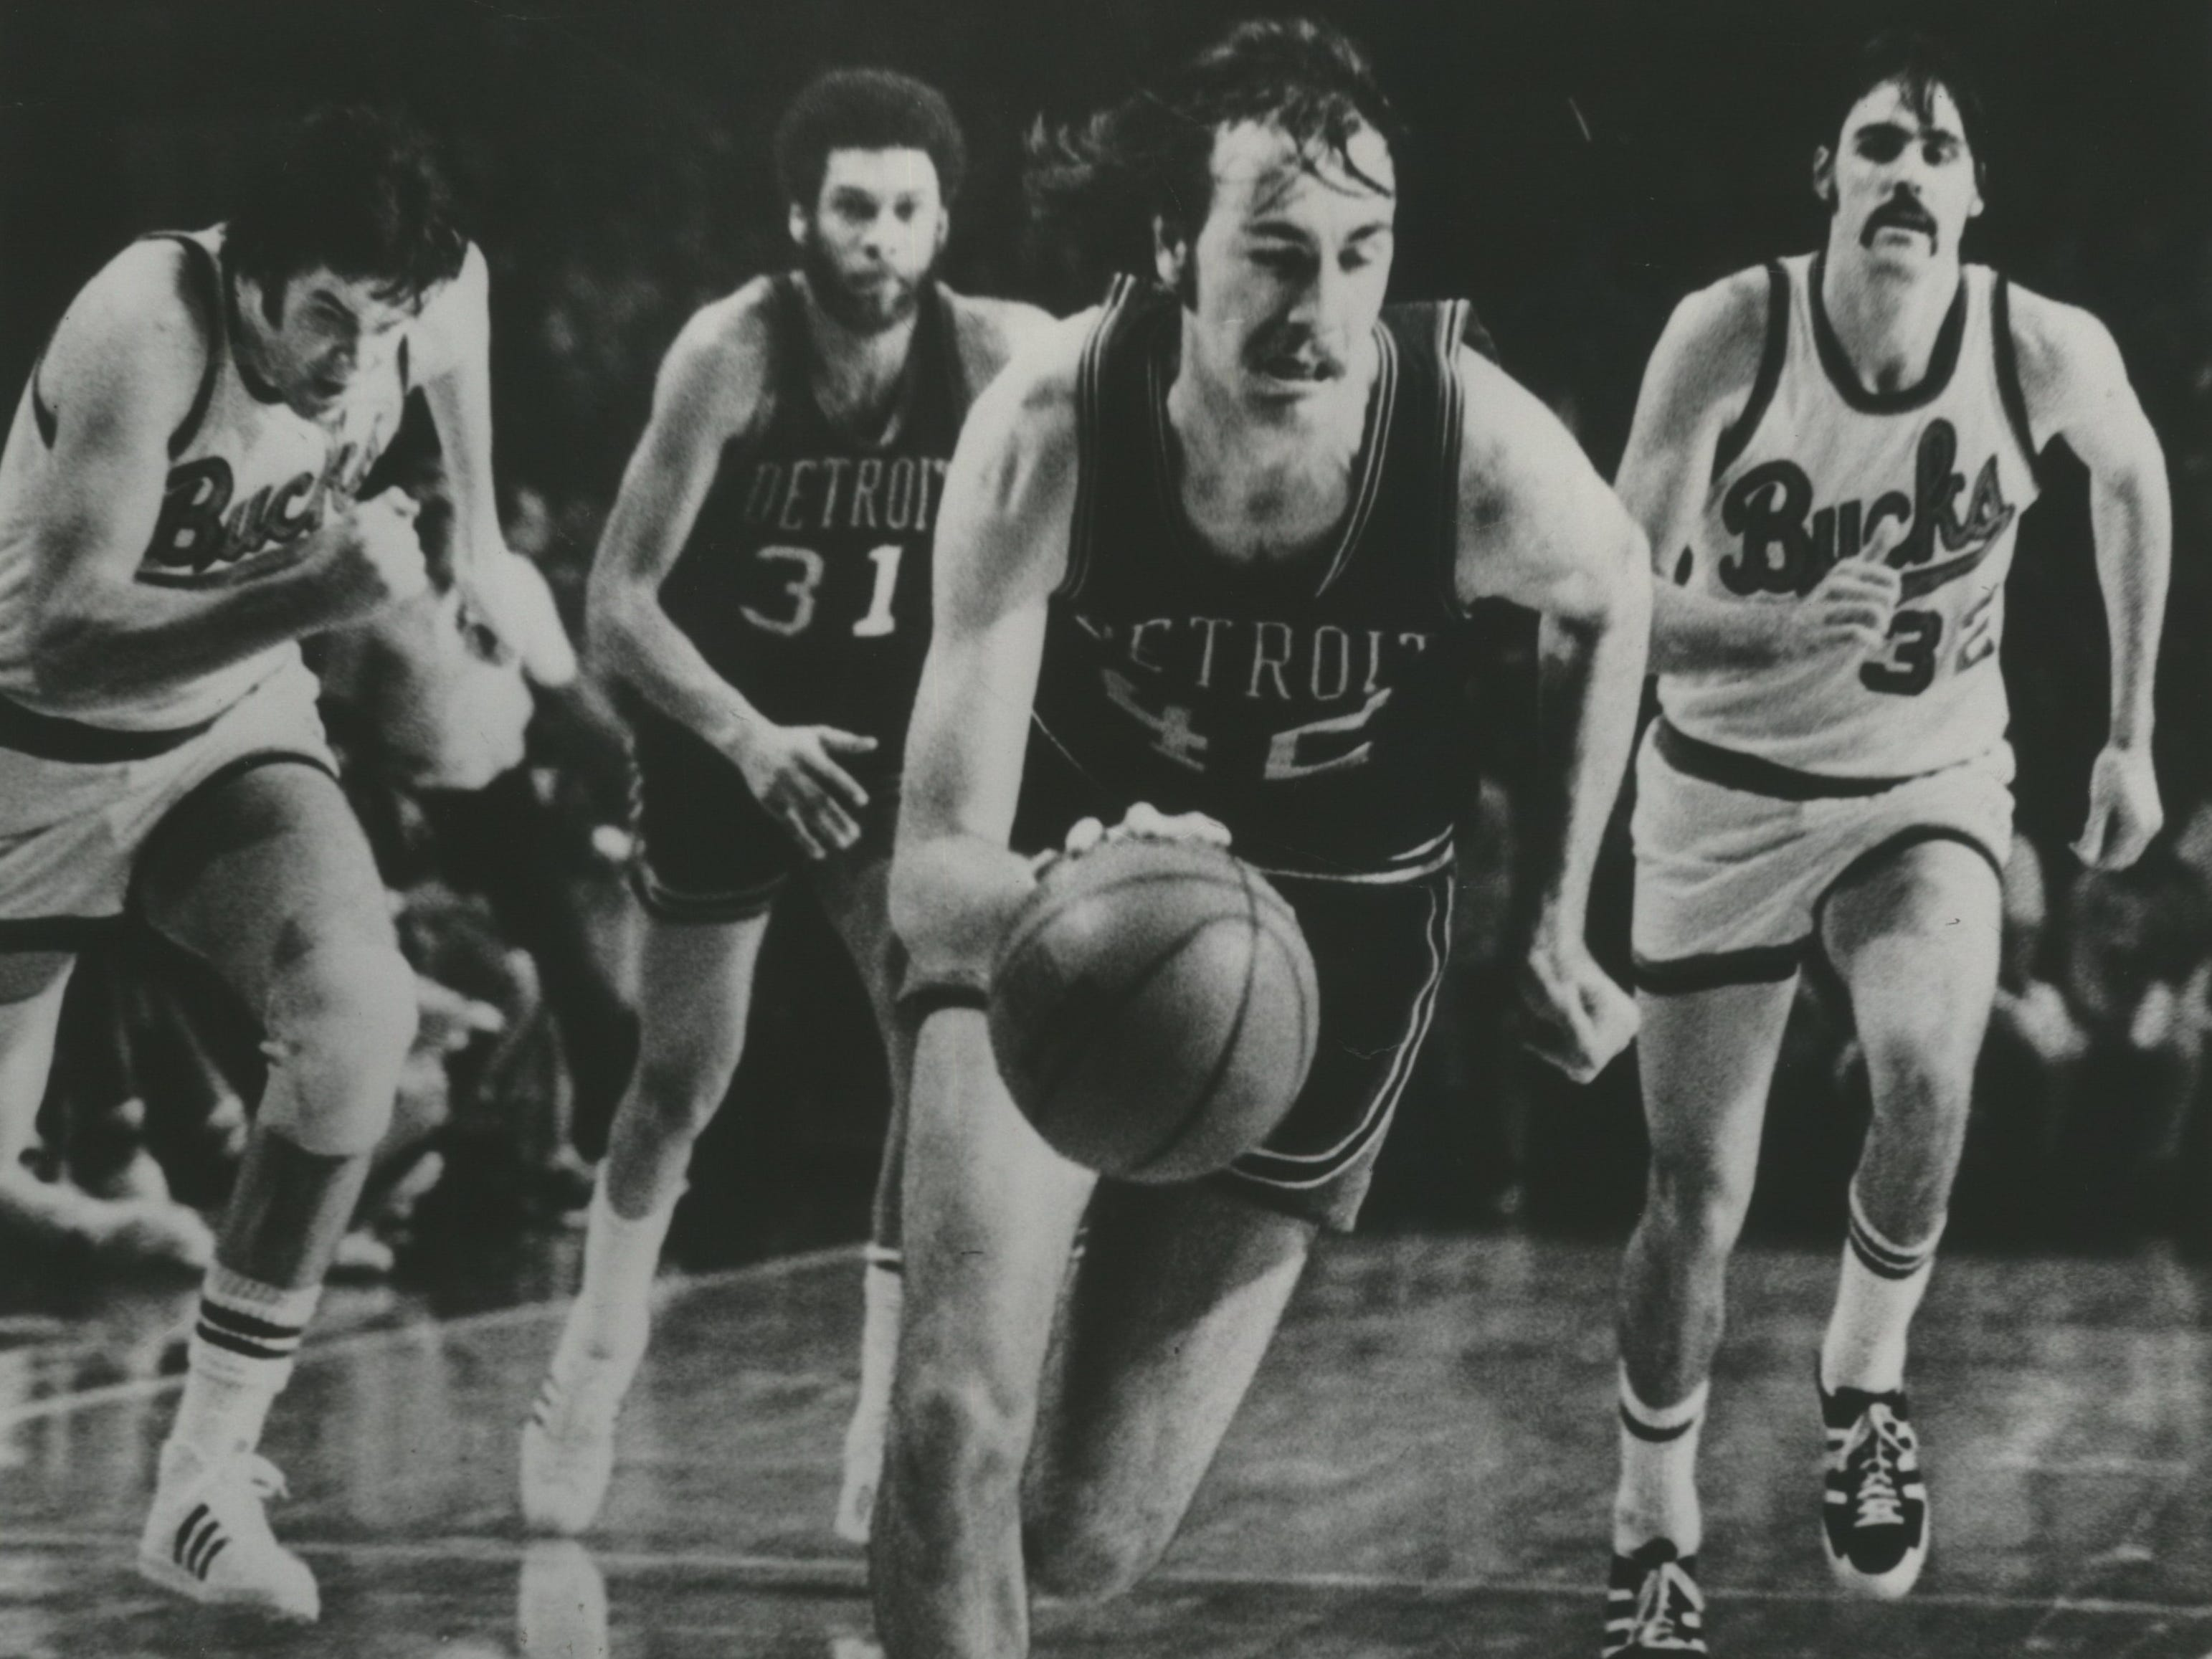 1976: Detroit's Chris Ford steals the inbound pass and takes the ball downcourt, as Bucks Dave Meyers (left) and Brian Winters (right) give chase in a key moment at the end of Game 3 of the first round of the 1976 Western Conference playoffs on April 18, 1976. The Pistons' 107-104 victory eliminated the Bucks from the playoffs. This photo was published in the April 19, 1976, Milwaukee Sentinel.